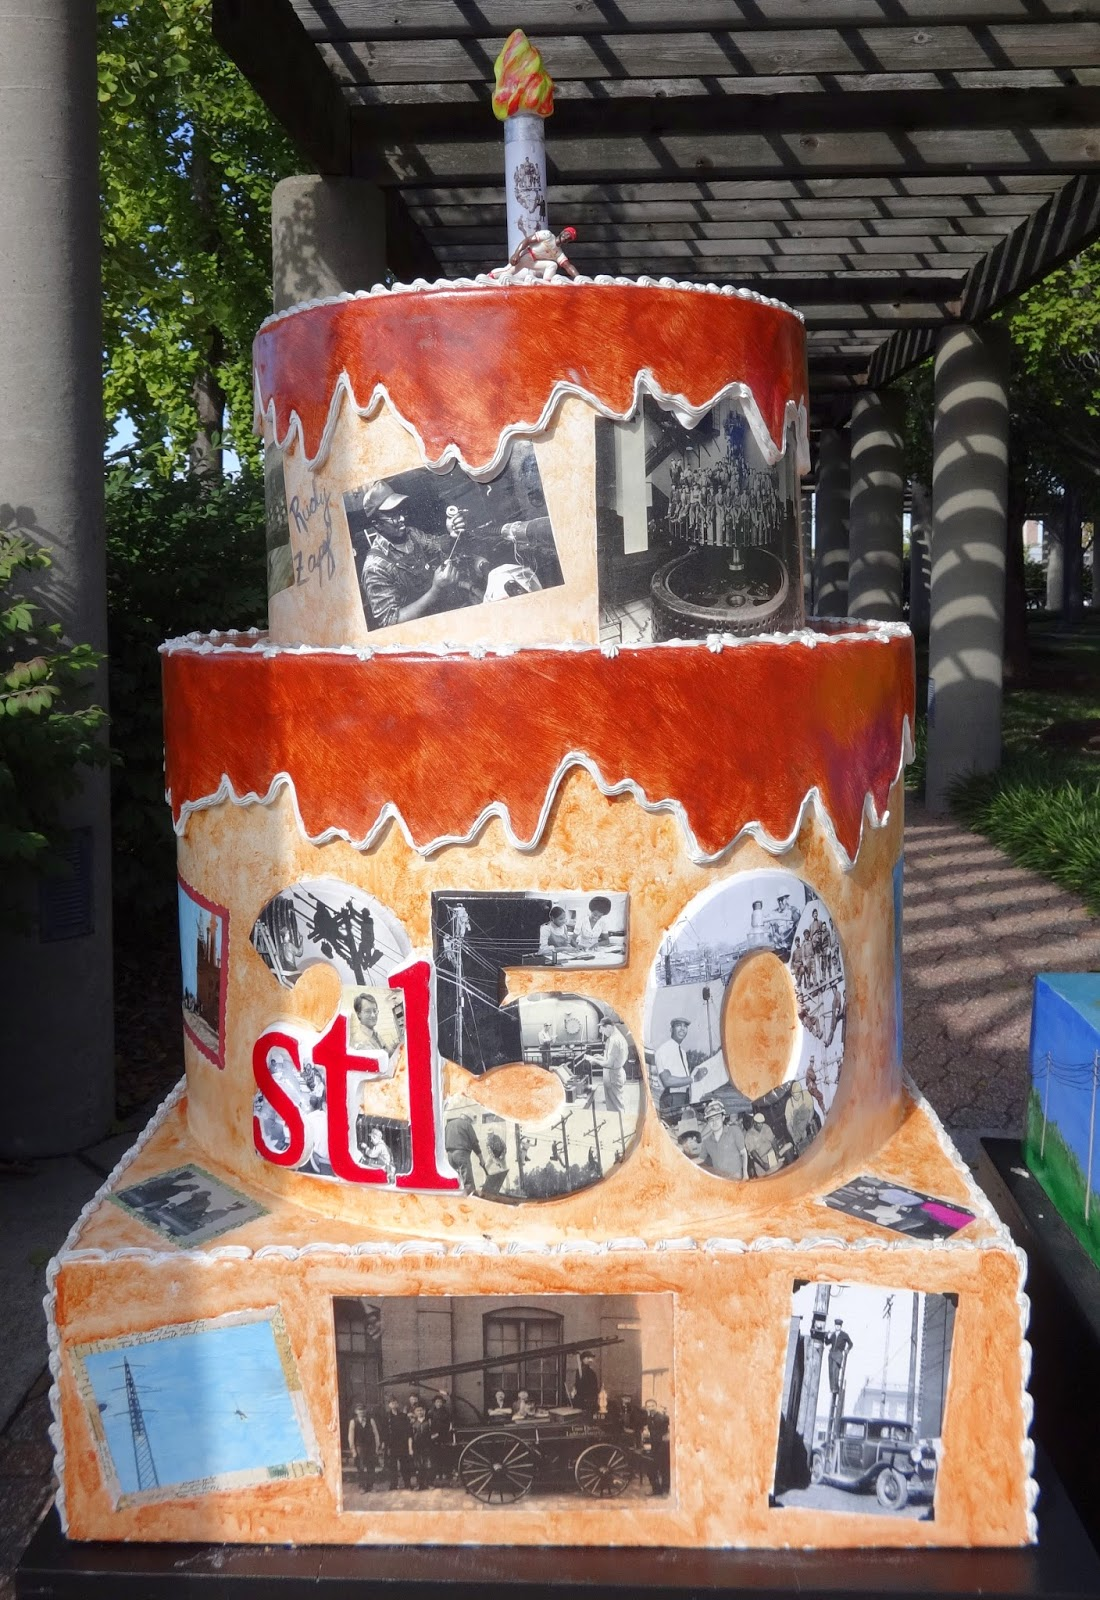 St Louis 250 Years 250 Cakes Here We Go